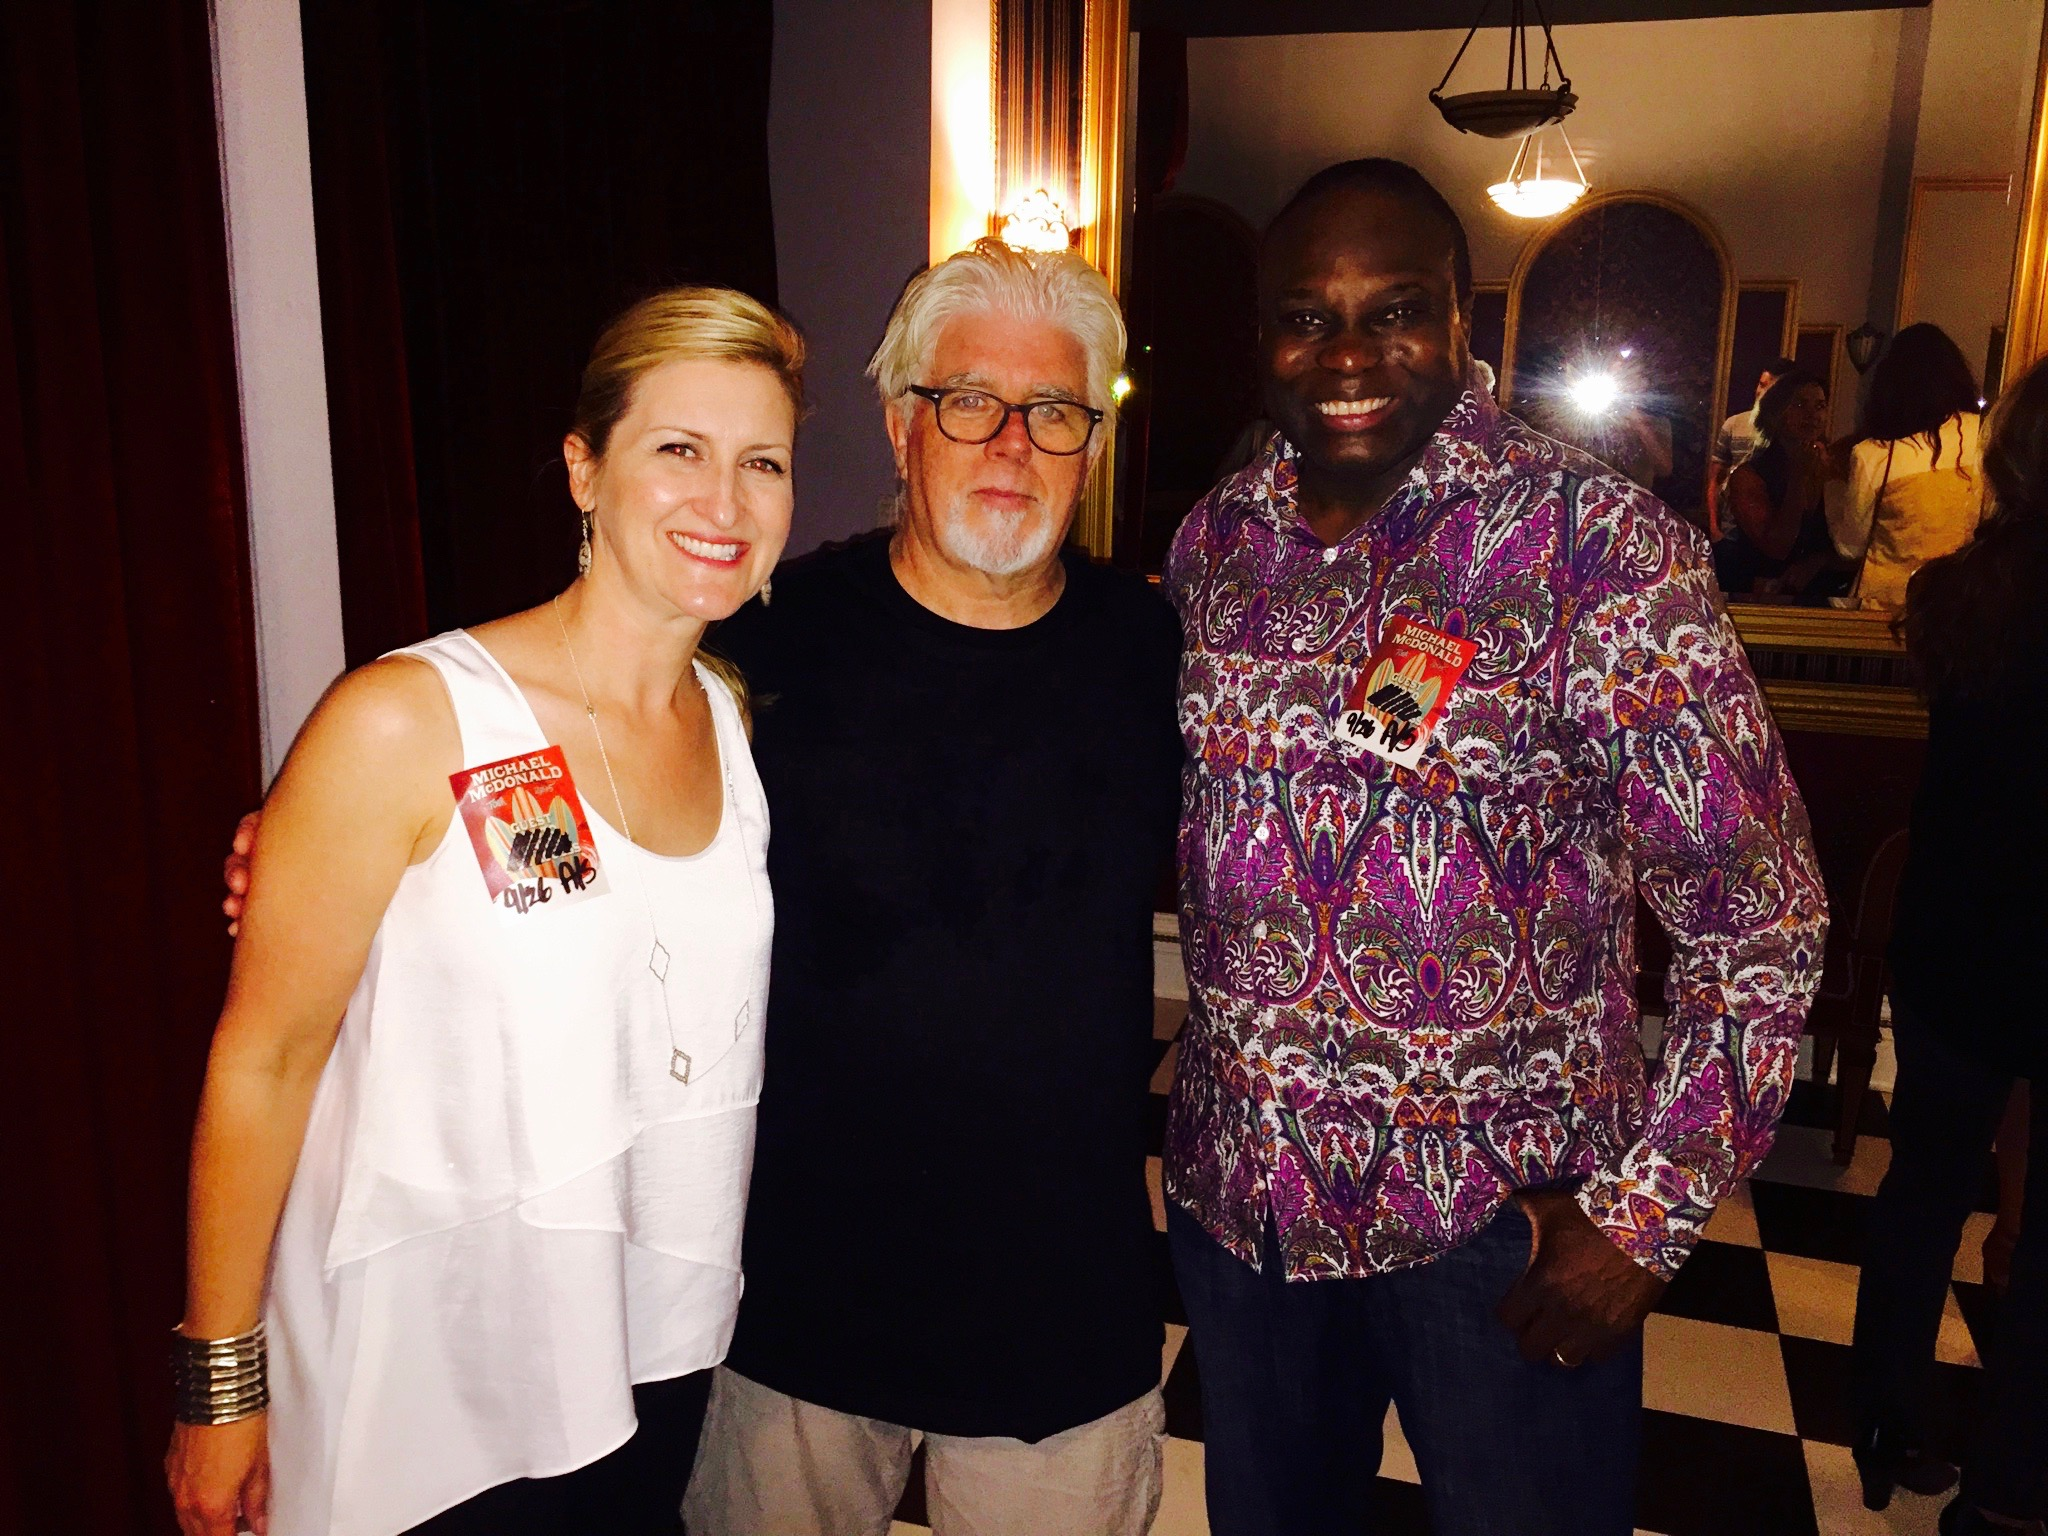 Backstage at Michael McDonald